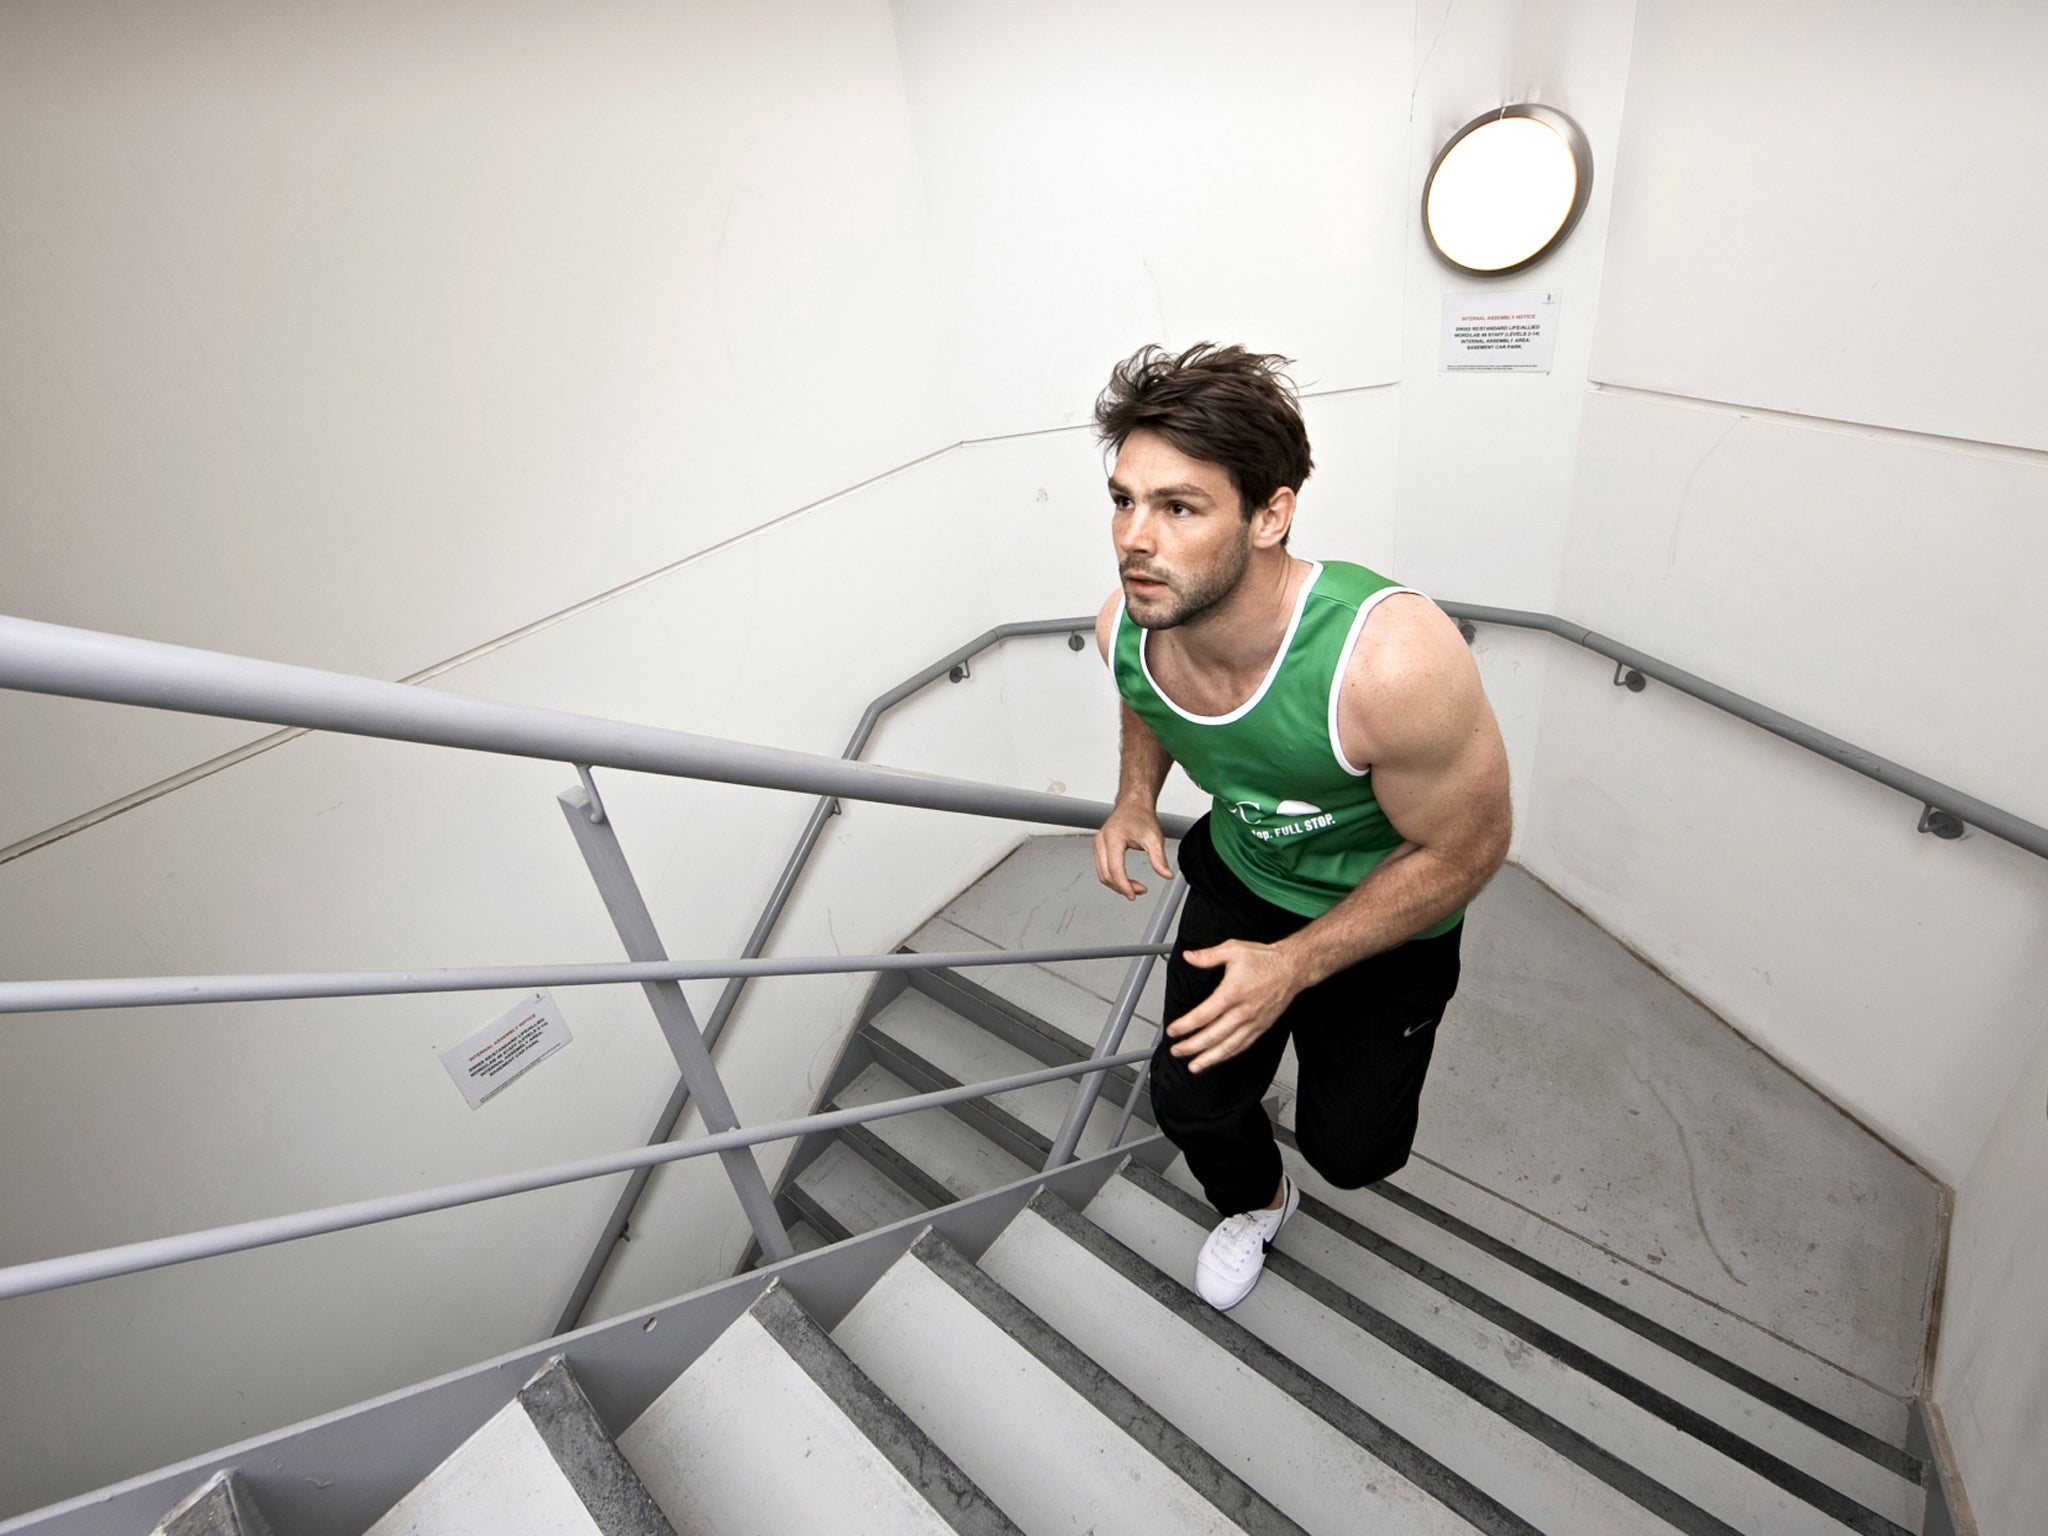 Stair Climbing A Step Change In Keeping Fit